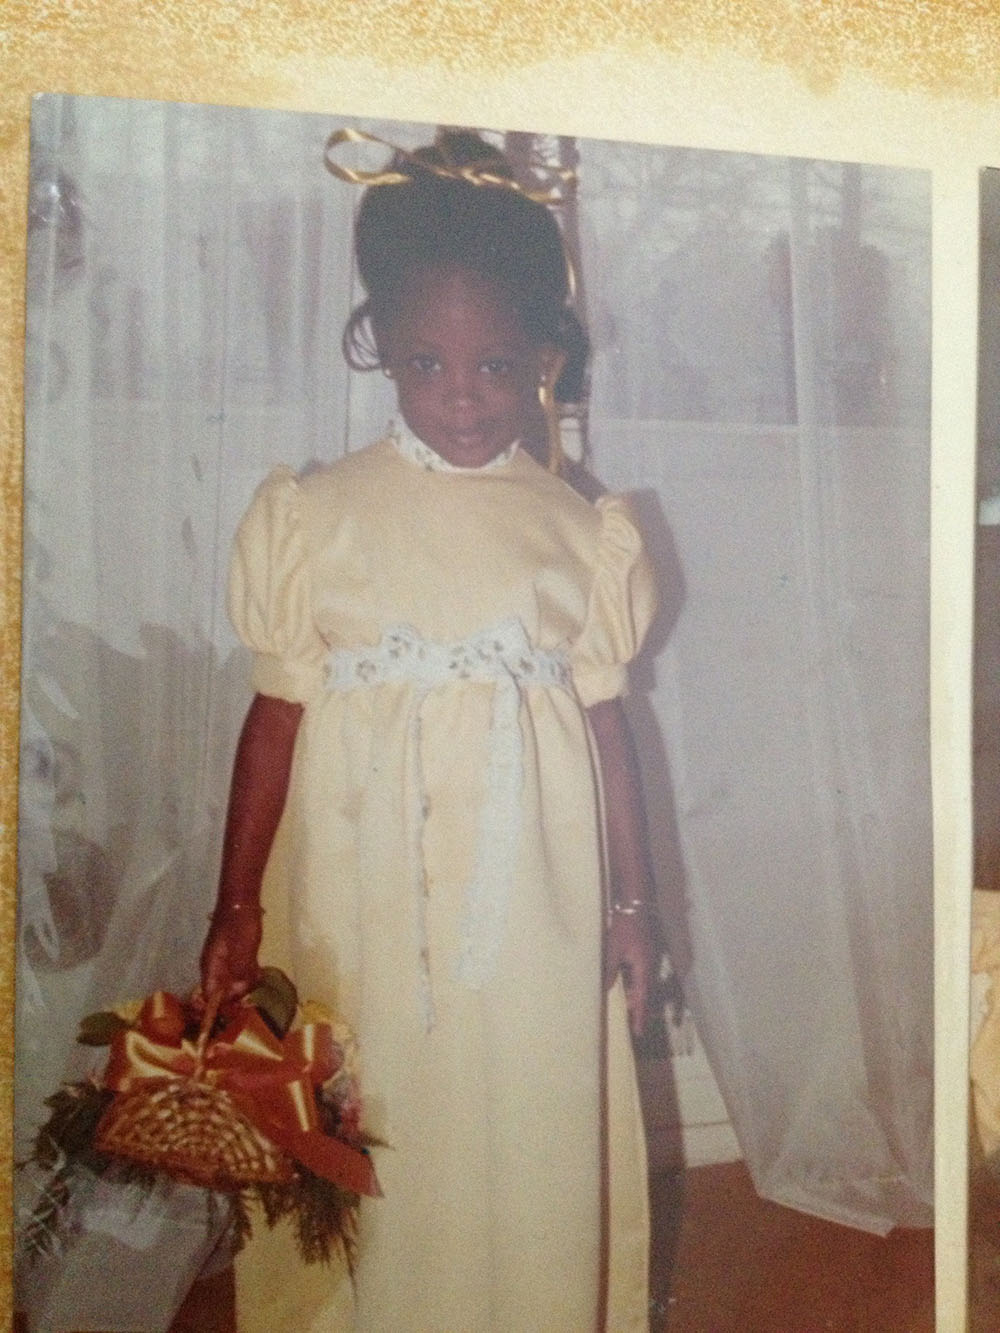 A young girl wearing a long formal dress holding a flower basket.